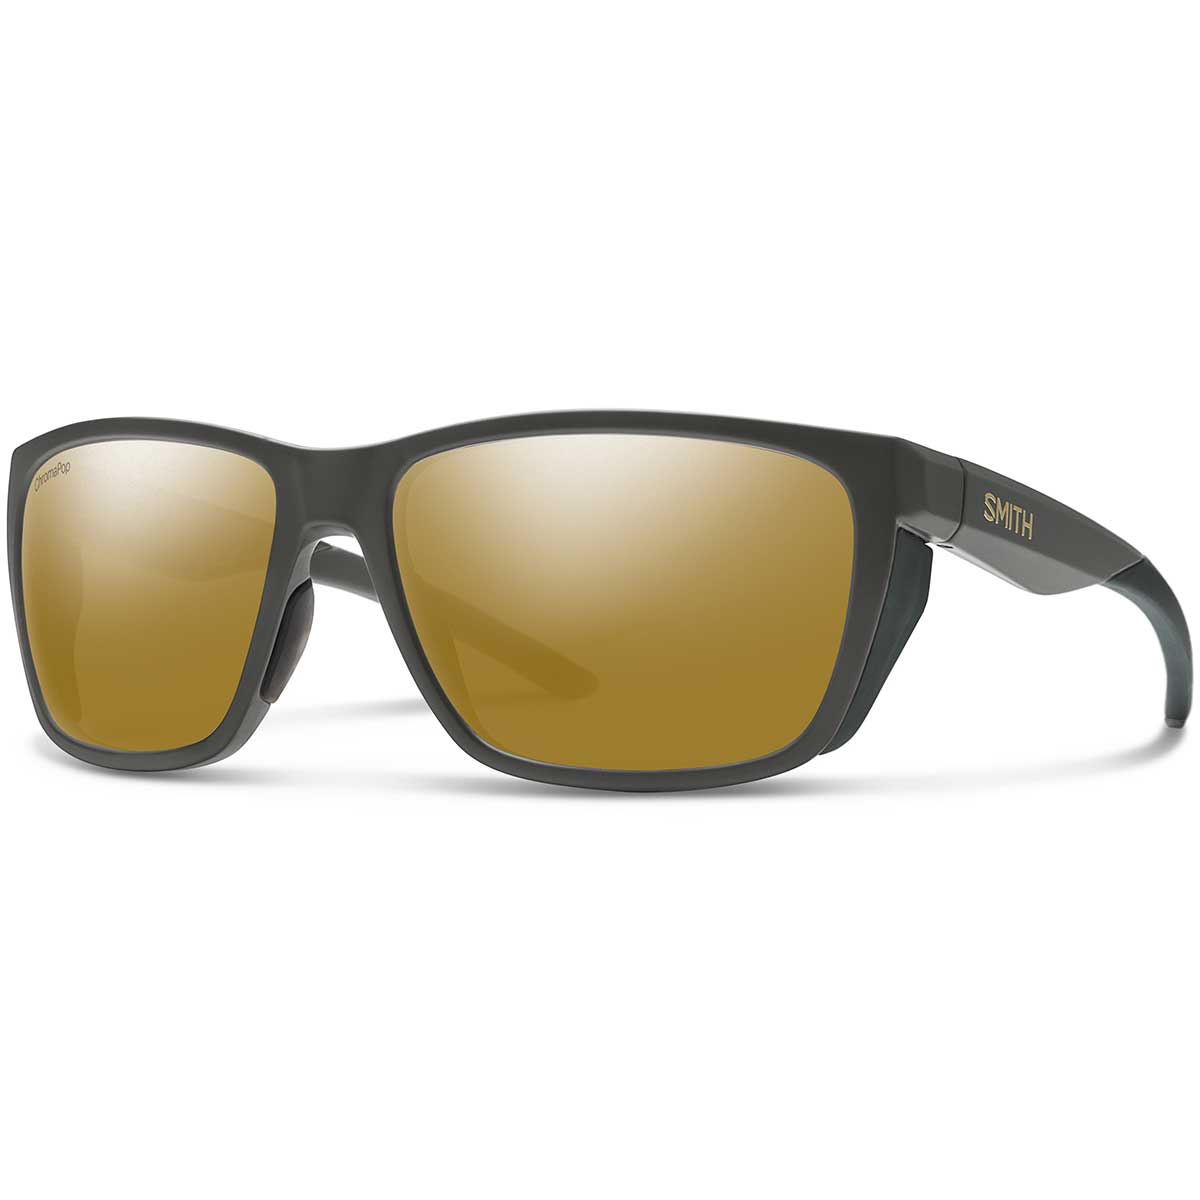 Smith Longfin sunglasses in Matte Gravy with Bronze Mirror polarized ChromaPop lenses